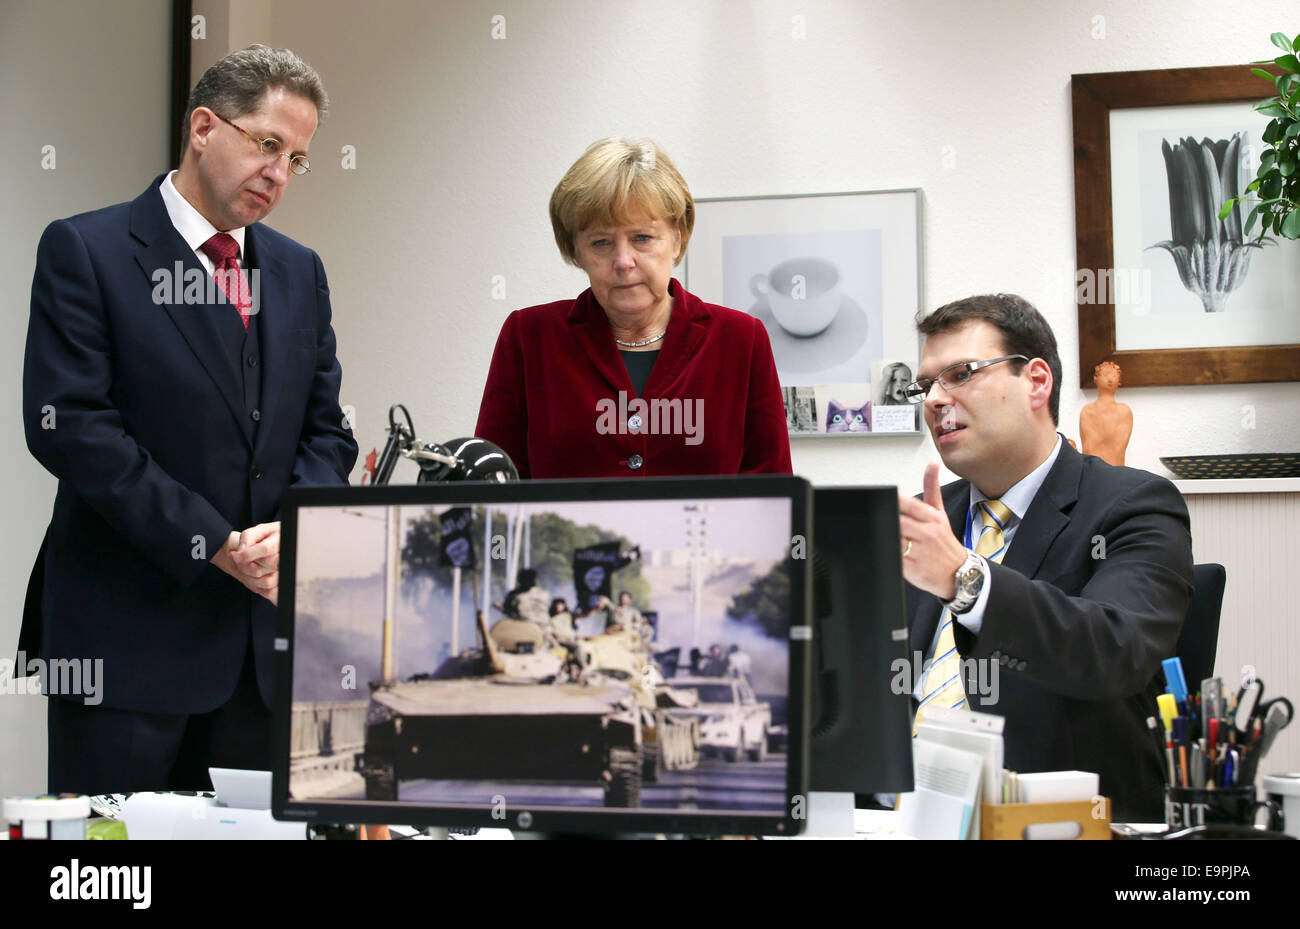 Cologne, Germany. 31st Oct, 2014. German Chancellor Angela Merkel (L) speaks to the president of the Federal Office - Stock Image